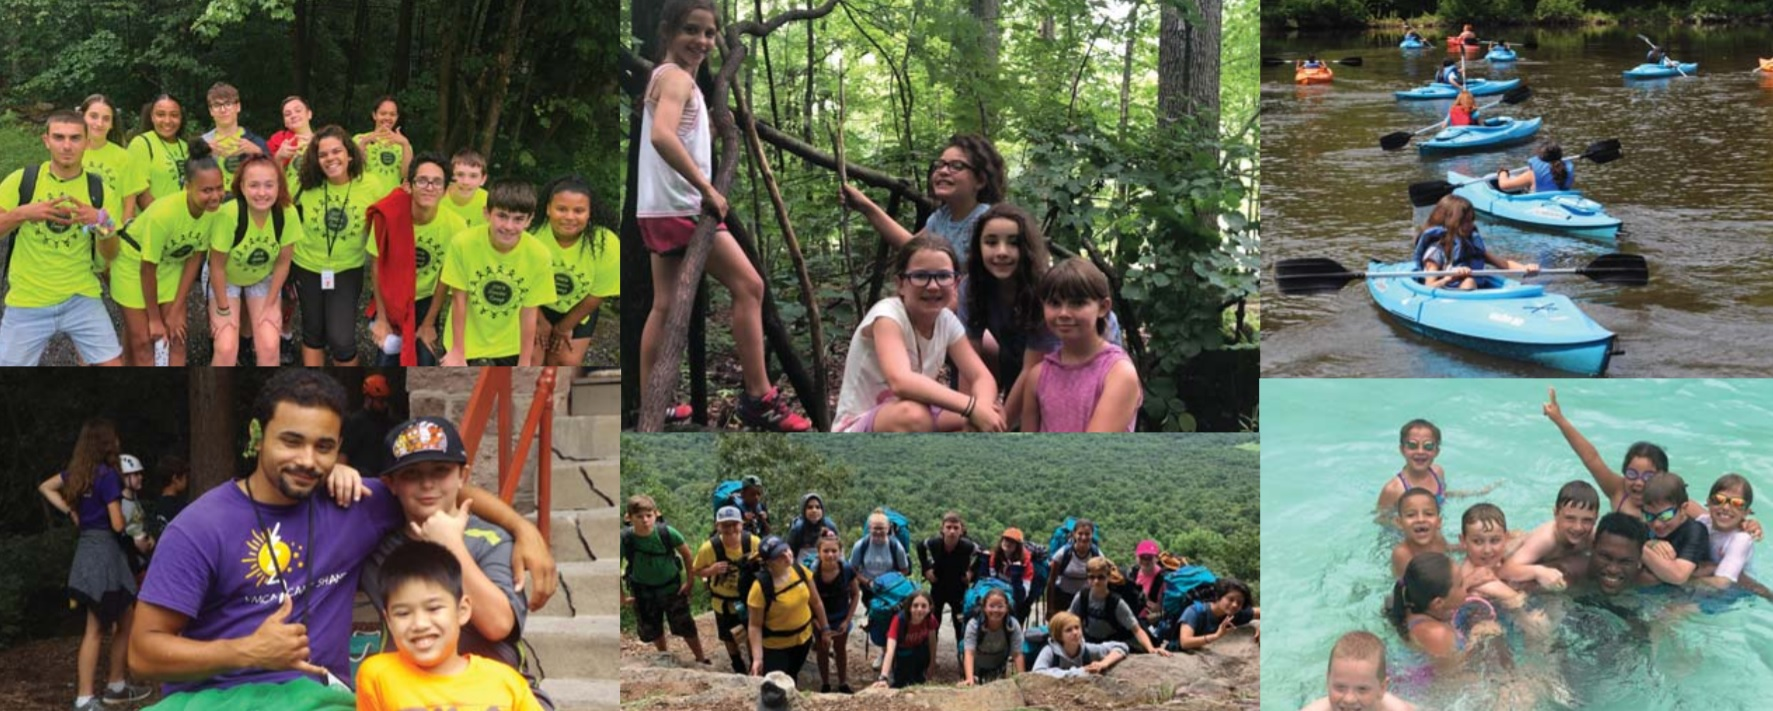 Campers enjoy an array of activities in this collage from Camp Shand's brochure. (Source: Lancaster Family YMCA)